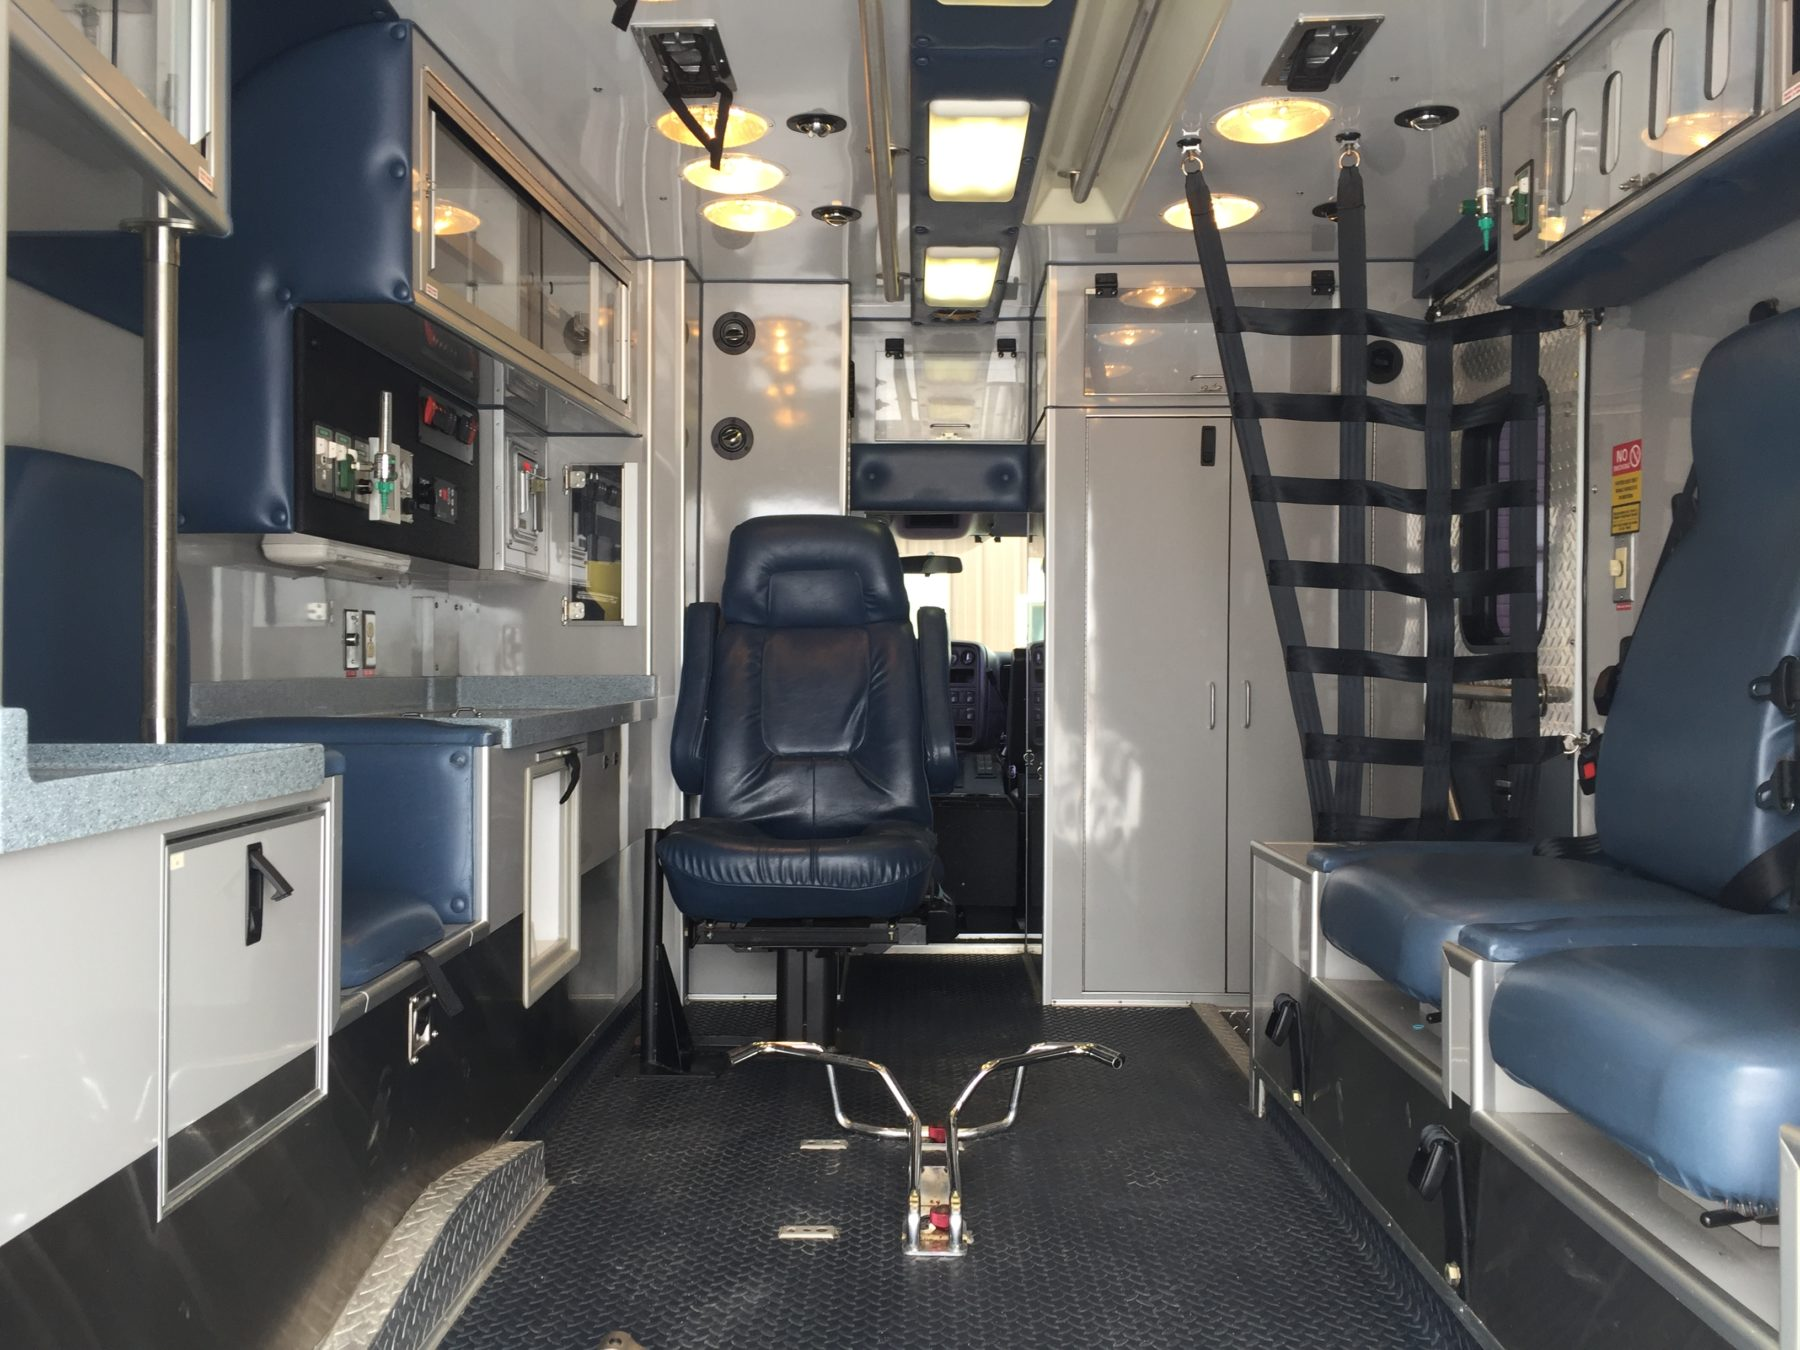 2006 Chevrolet C4500 Heavy Duty Ambulance For Sale – Picture 2